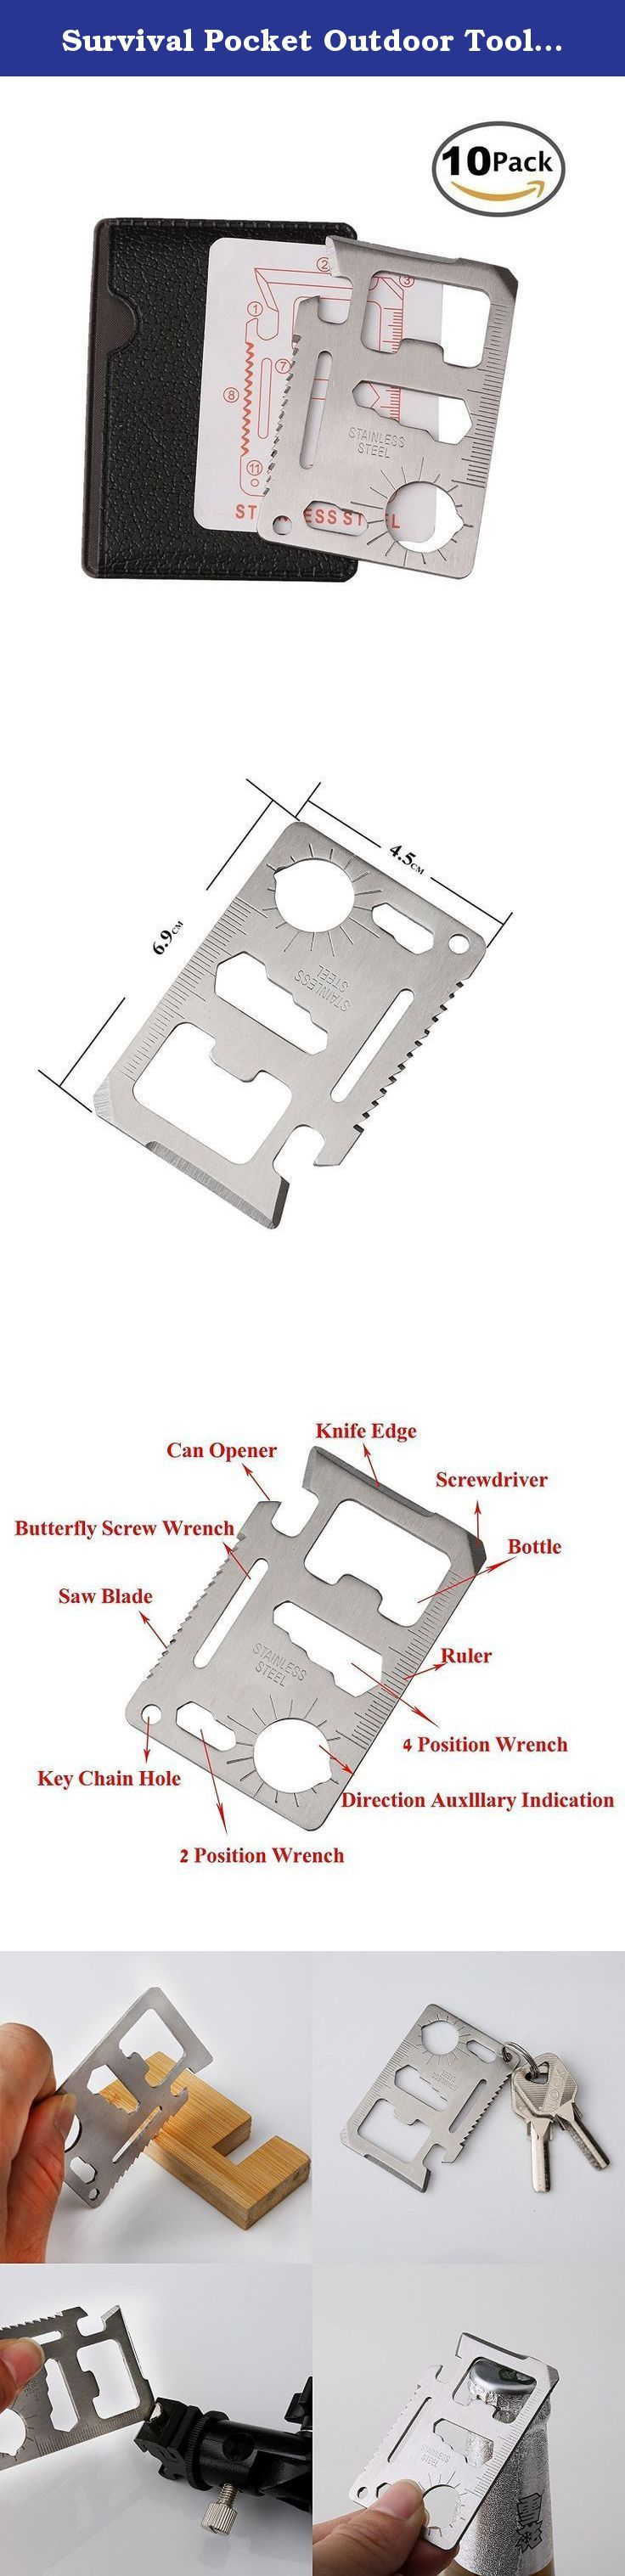 Survival Pocket Outdoor Tool, CAM-ULATA 11 in 1 Portable Multi Function Stainless Steel Credit Card Size Bottle Opener for Camping Traveling Hiking Mini Wallet, 10 Pack. Survival Pocket Outdoor Tool, CAM-ULATA 11 in 1 Portable Multi Function Stainless Steel Credit Card Size Bottle Opener for Camping Traveling Hiking Mini Wallet. Features: - Can Opener: to open cans easily with the hook. - Knife Edge: sharp blade and can cut off the ropes or peel fruit. - Small Knife: cut something…